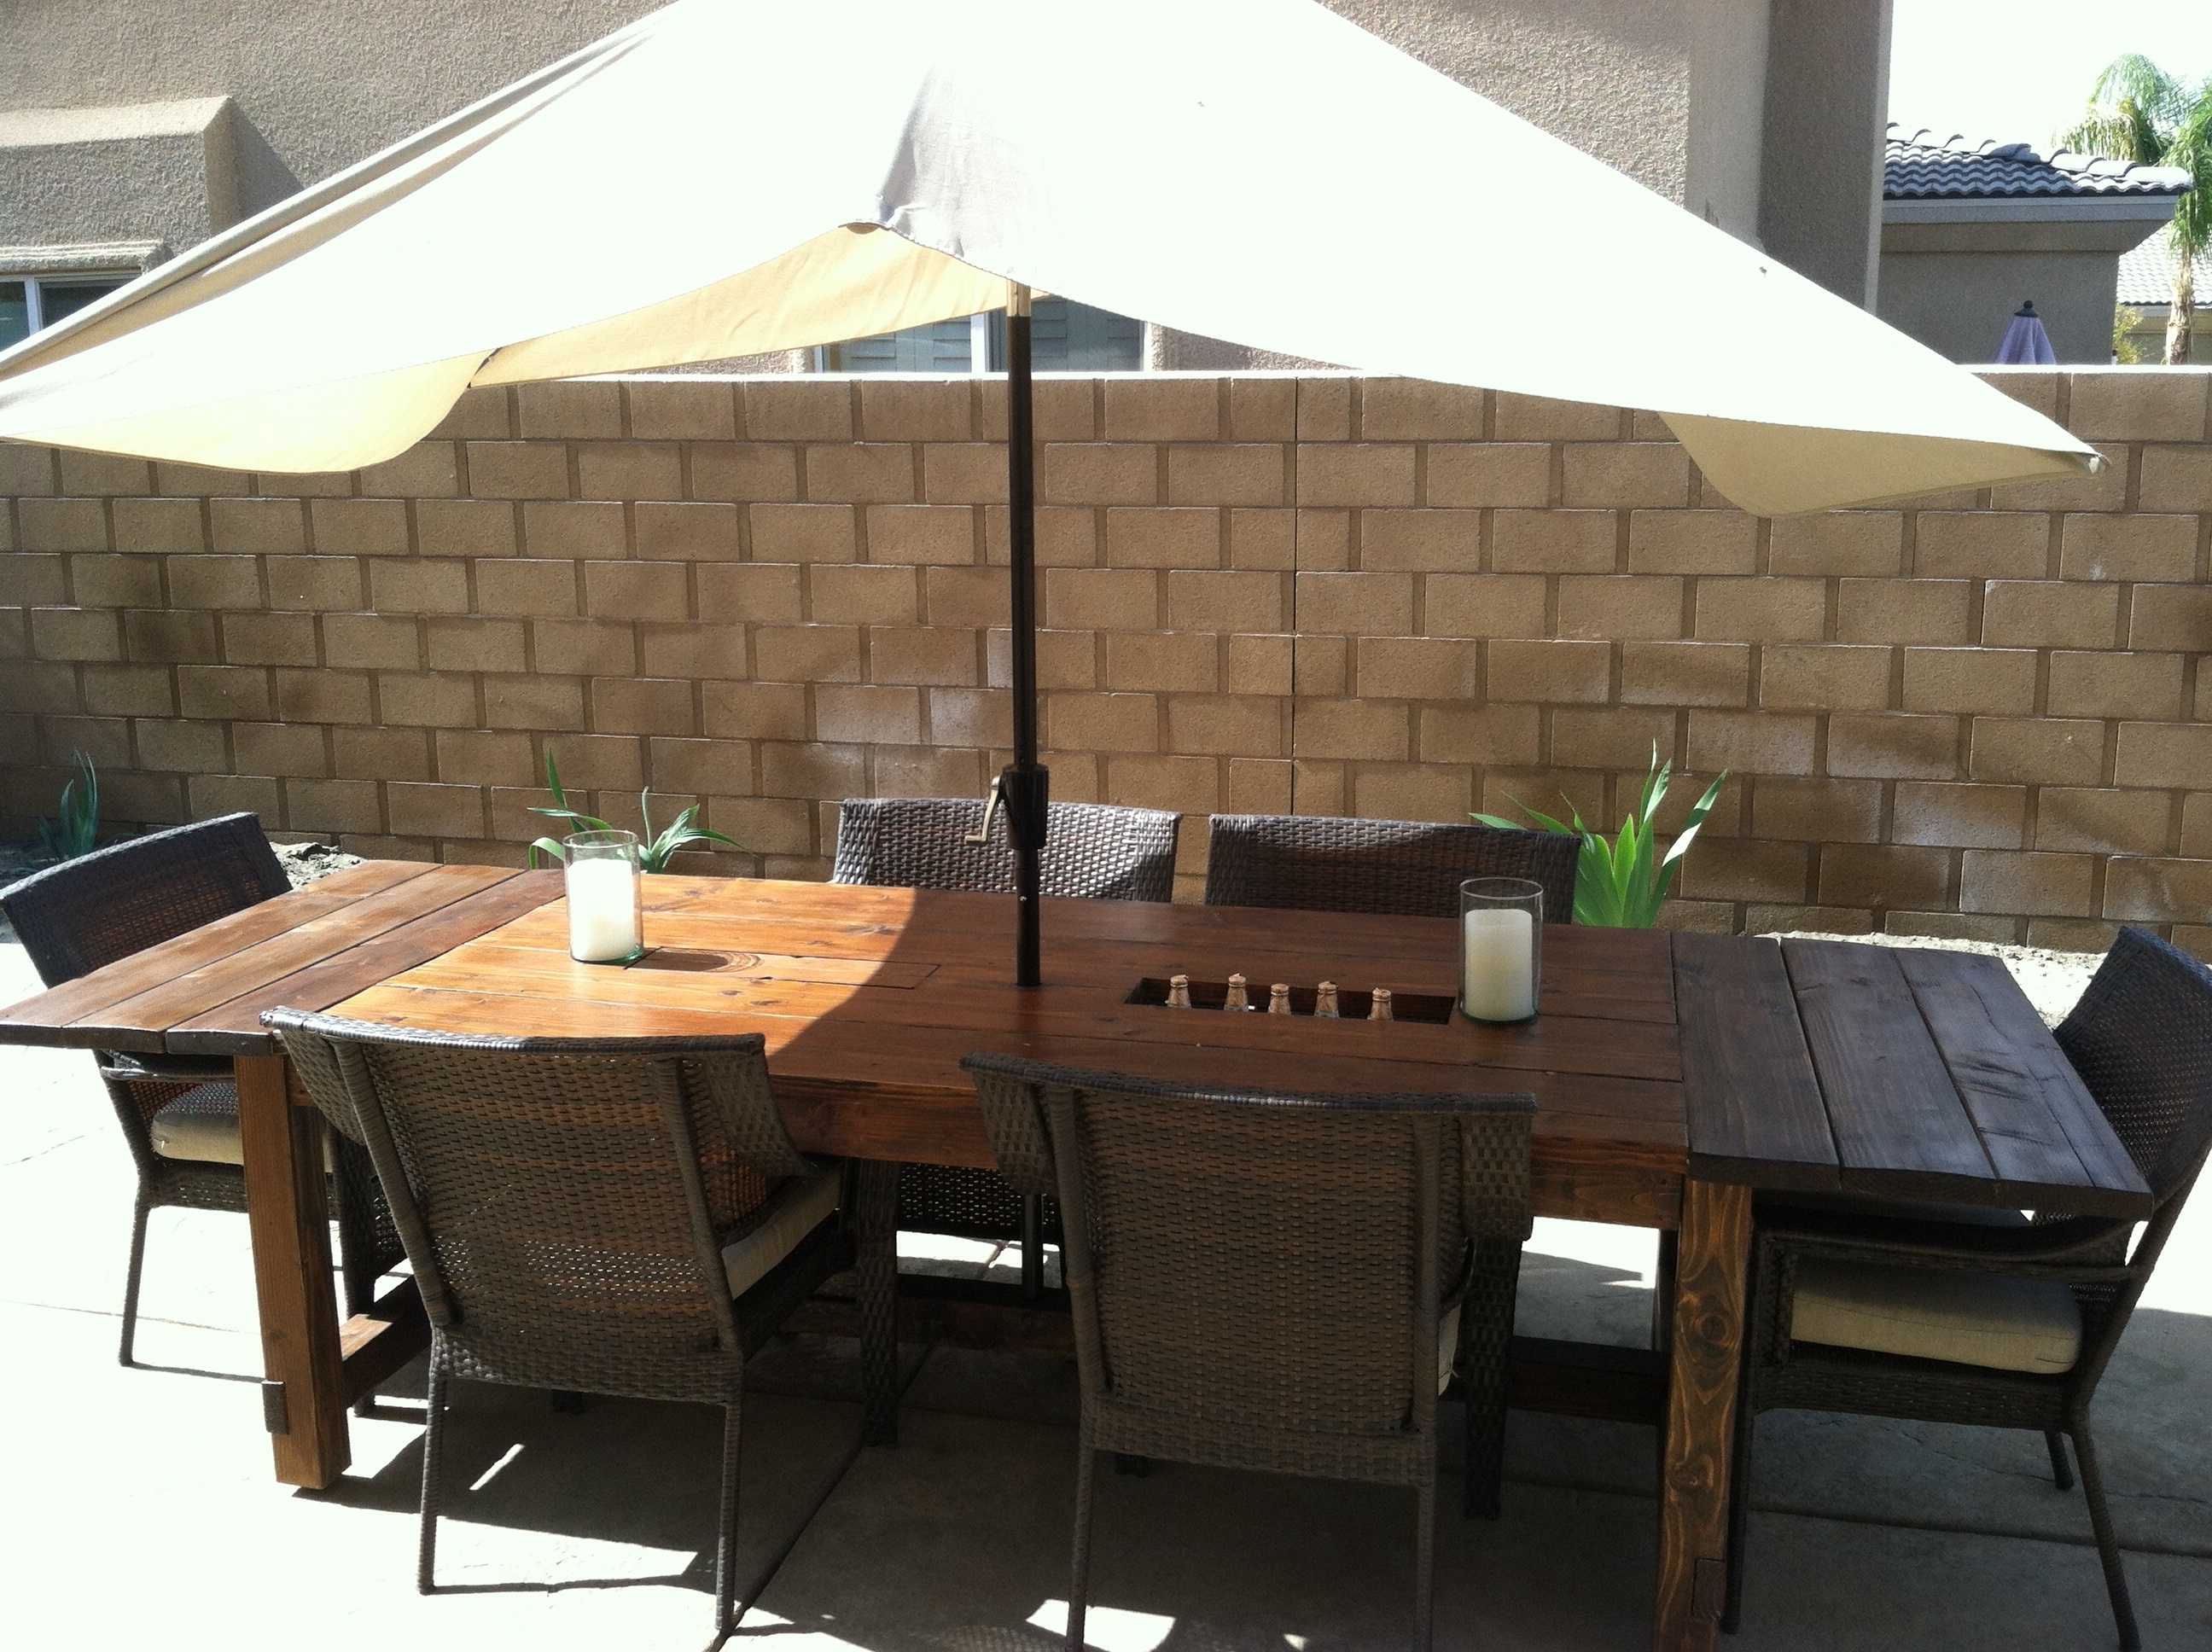 Well Known Patio Conversation Sets With Umbrella For Patio : Patio Table Umbrella Patio Table (View 15 of 15)